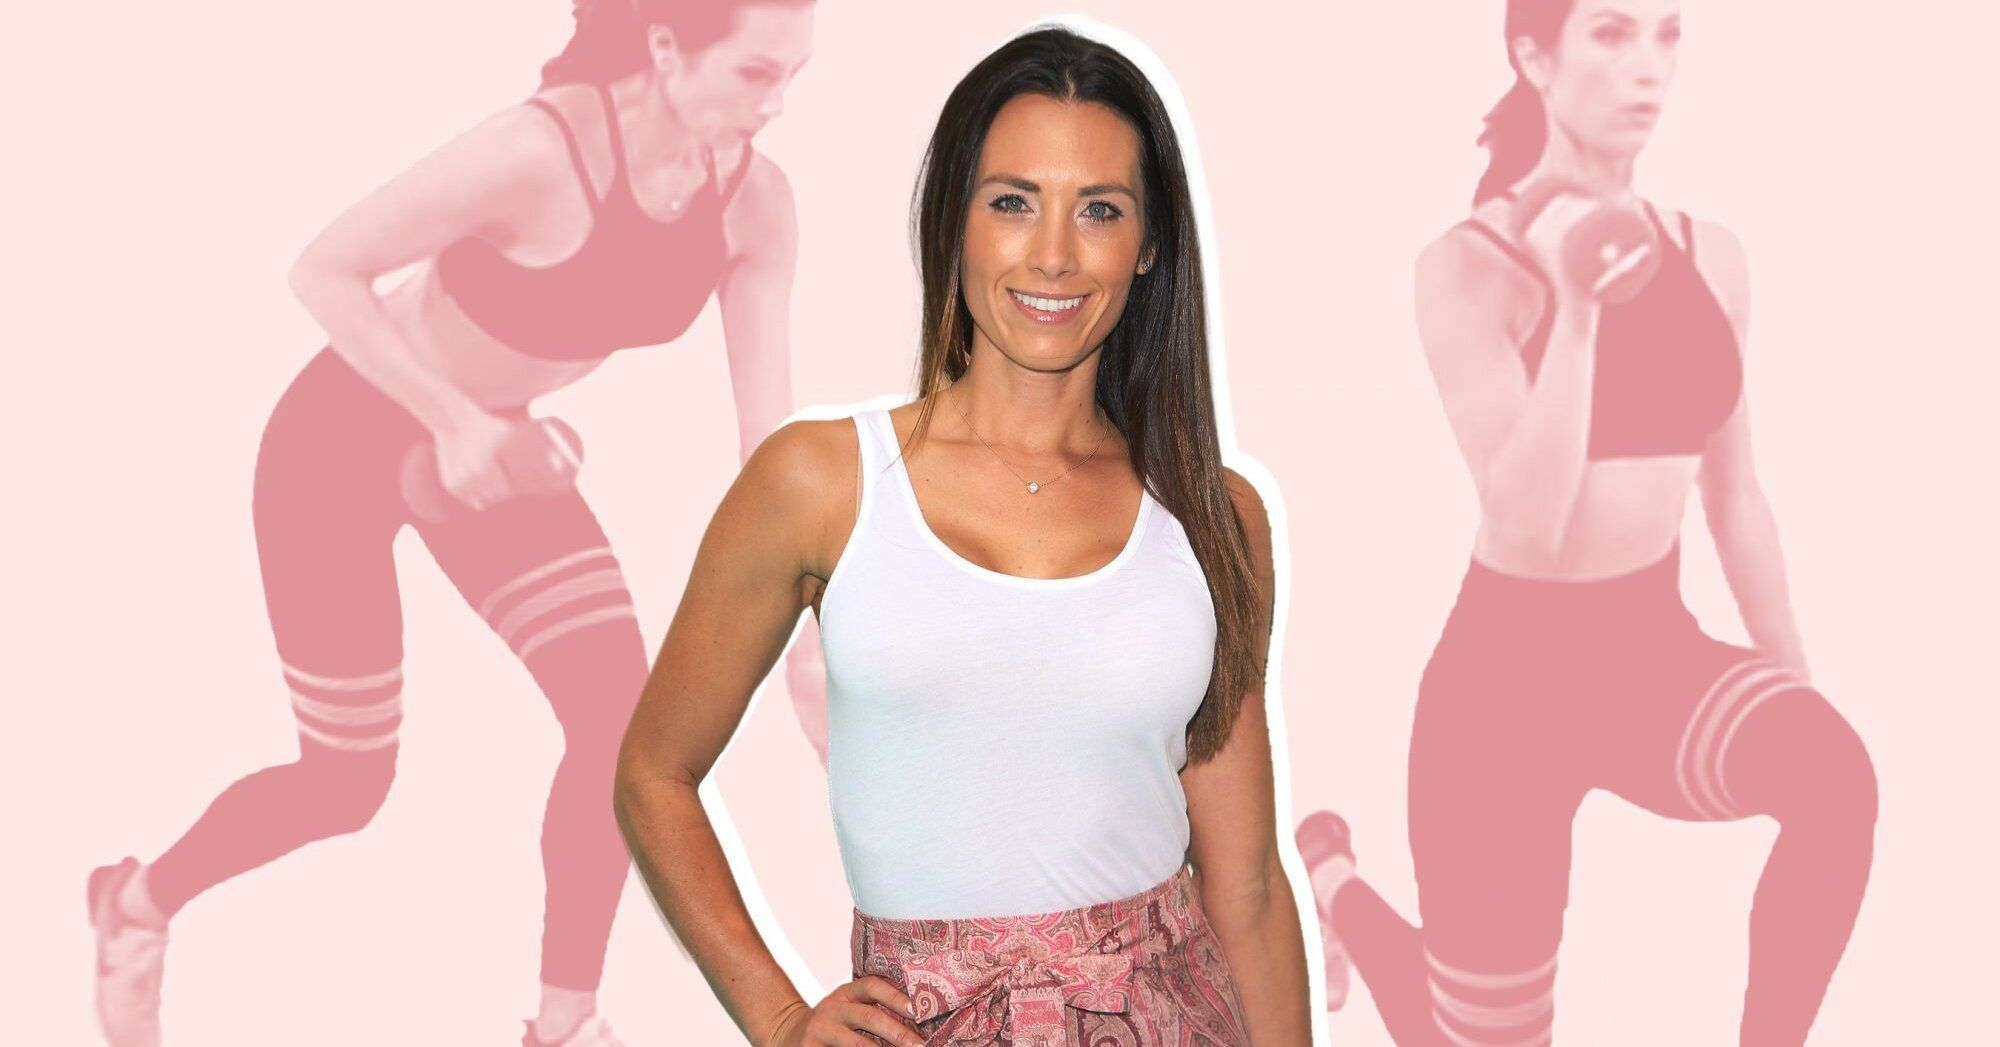 5 Dumbbell Workouts From Autumn Calabrese that Will Tone Your Entire Body #dumbbellworkout Autumn Calabrese shows us five dumbbell exercises that are perfect for strengthening your entire body.